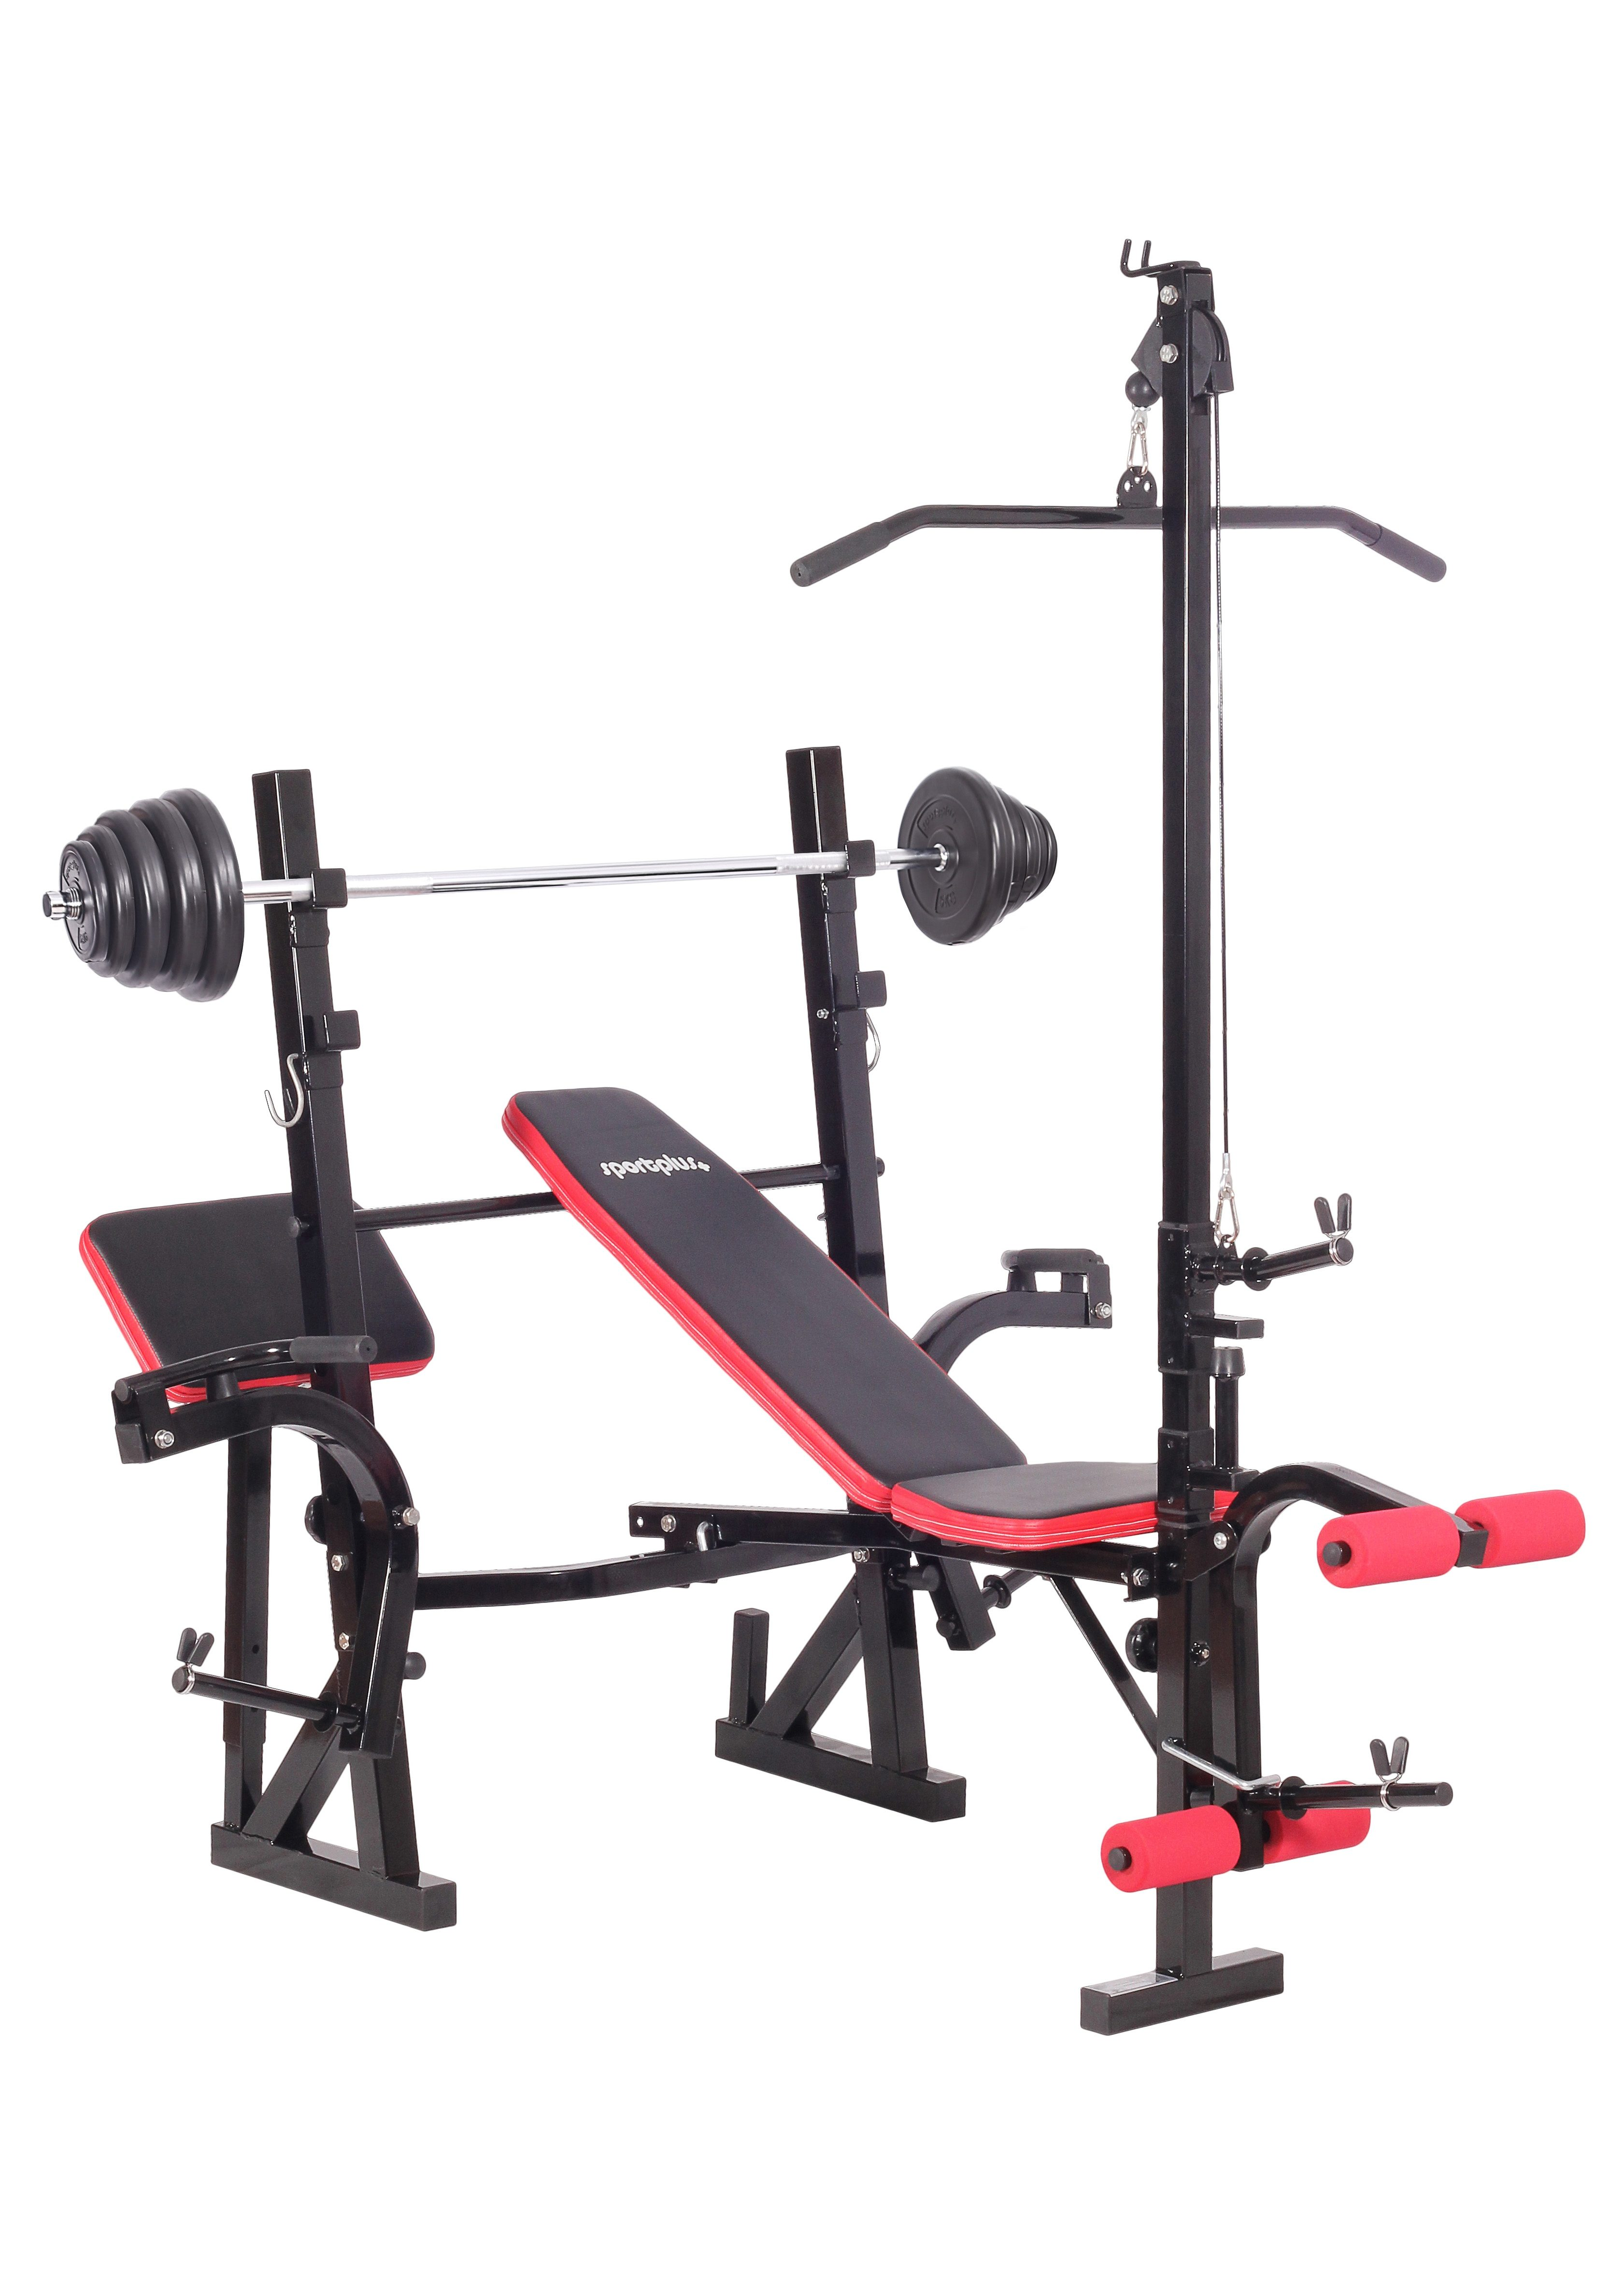 Hantelbank, »Weight Bench SP-WB-005-Set«, Sportplus